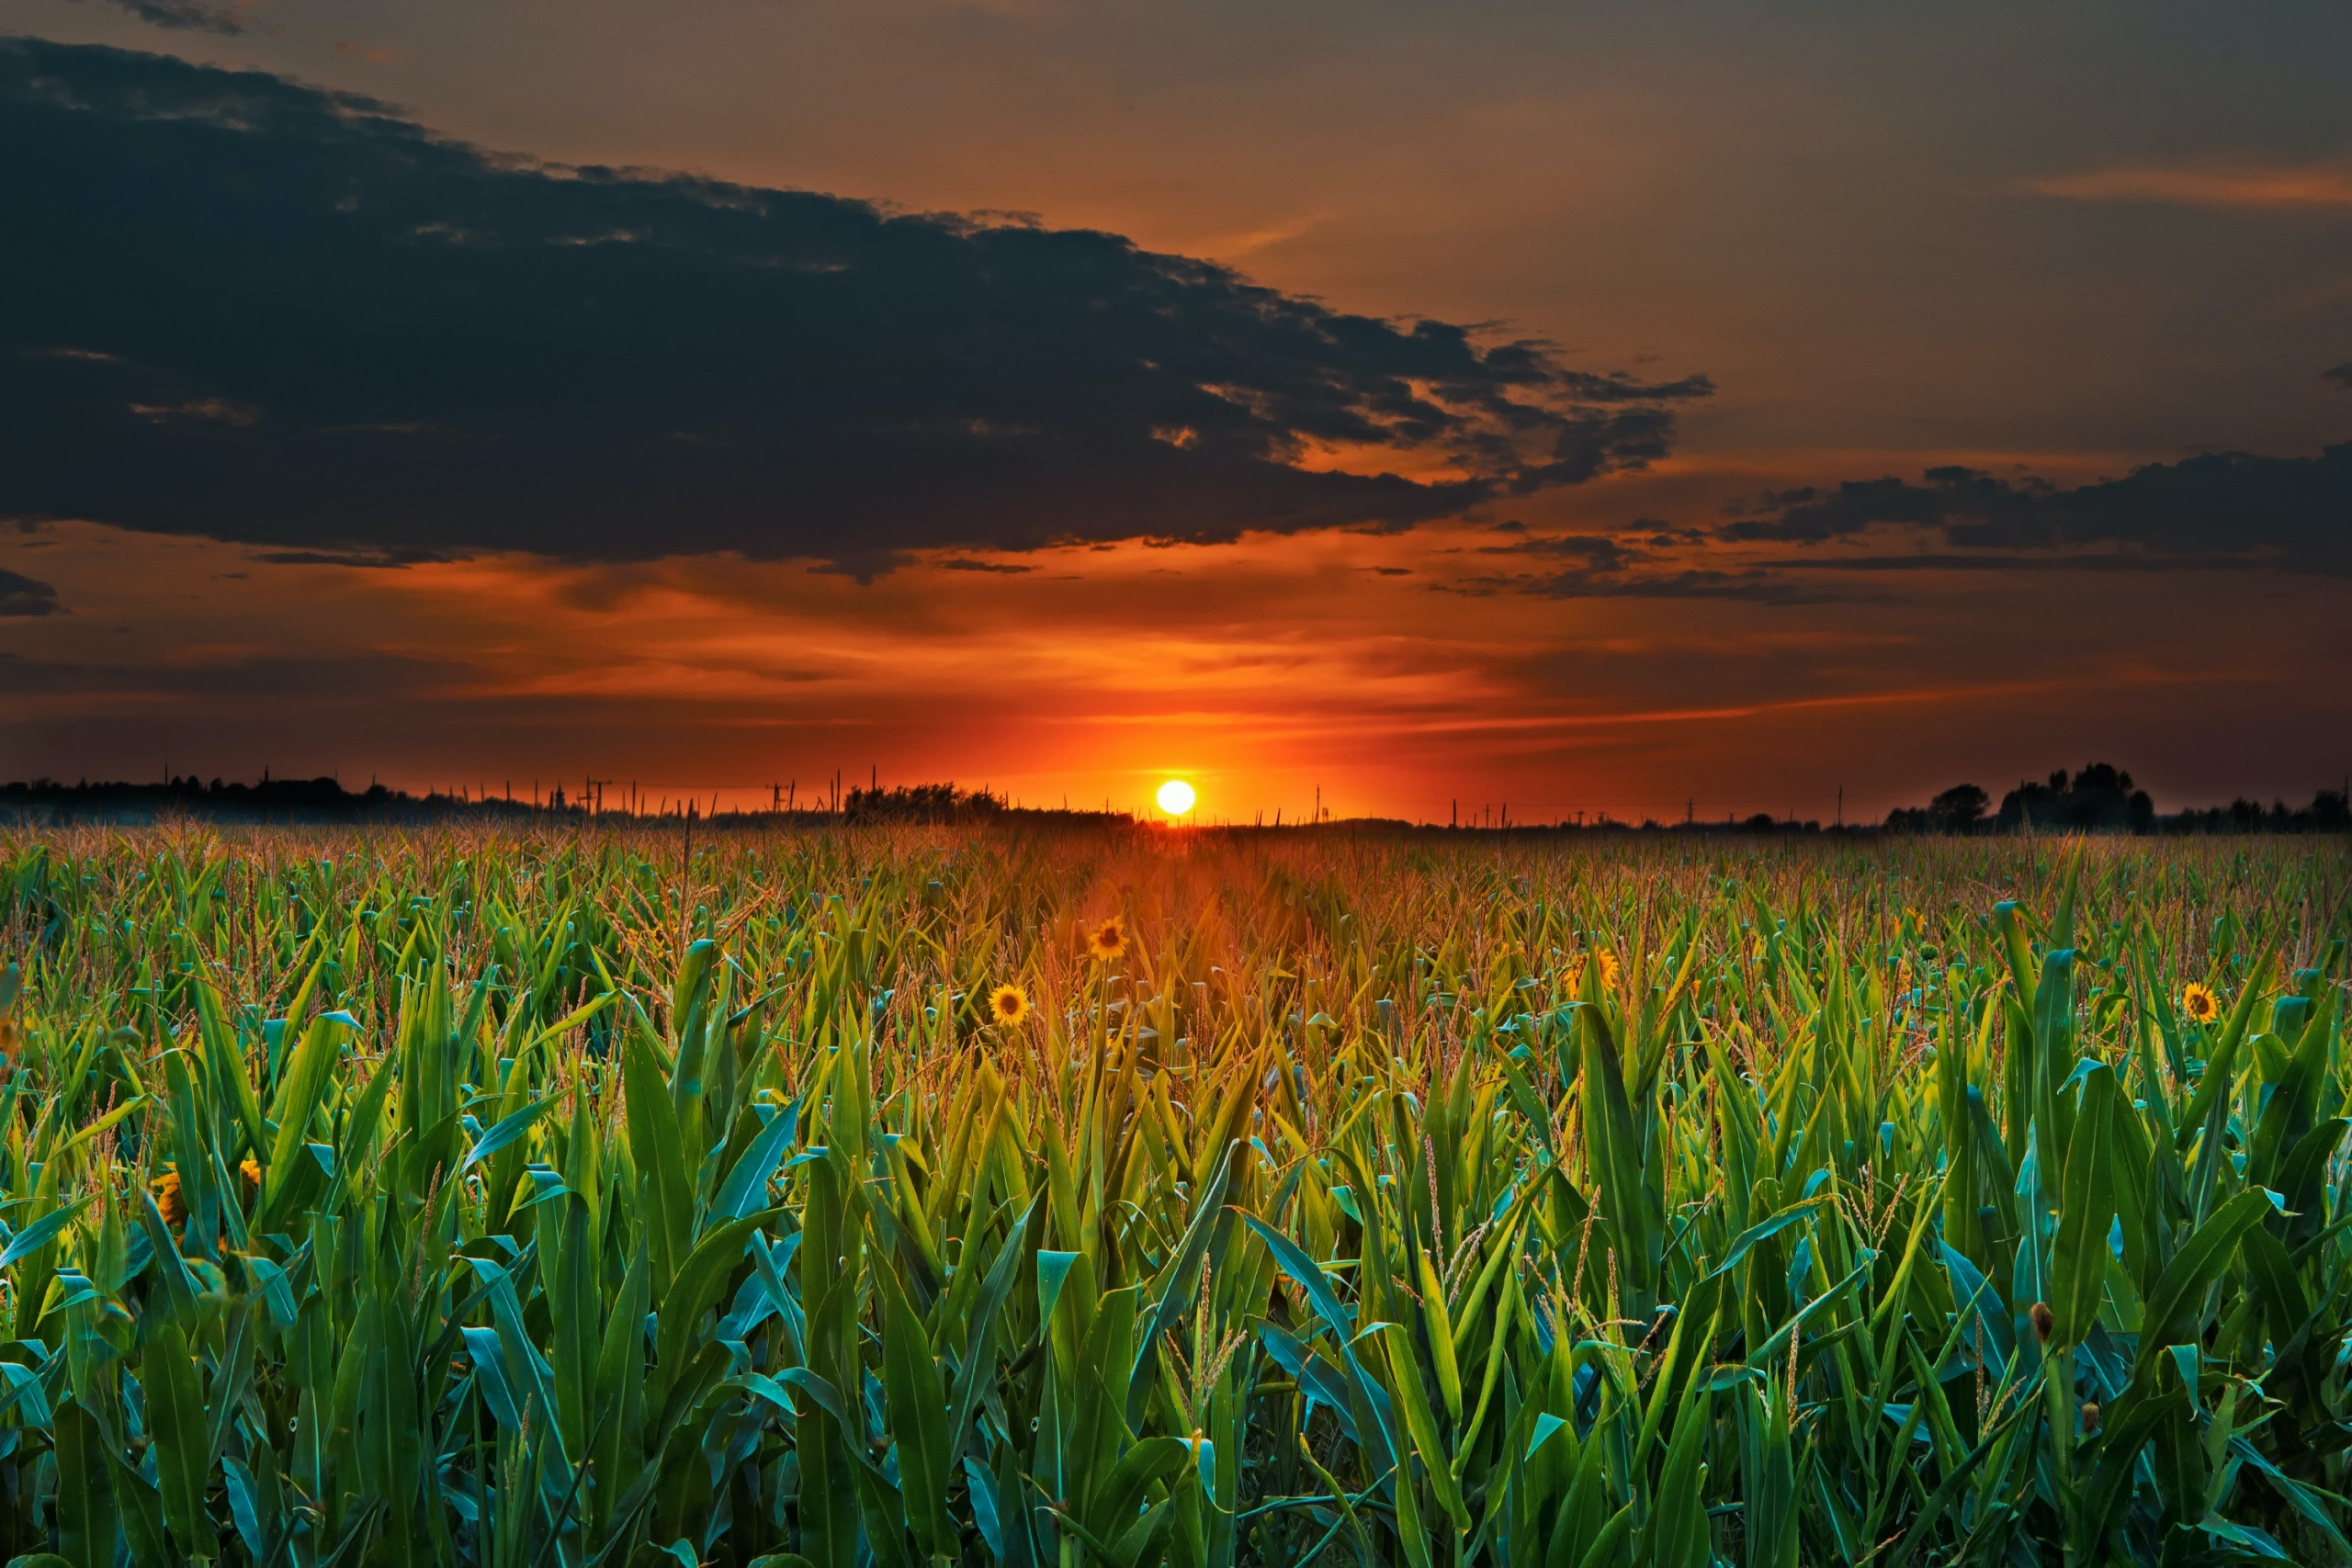 fields and sunset